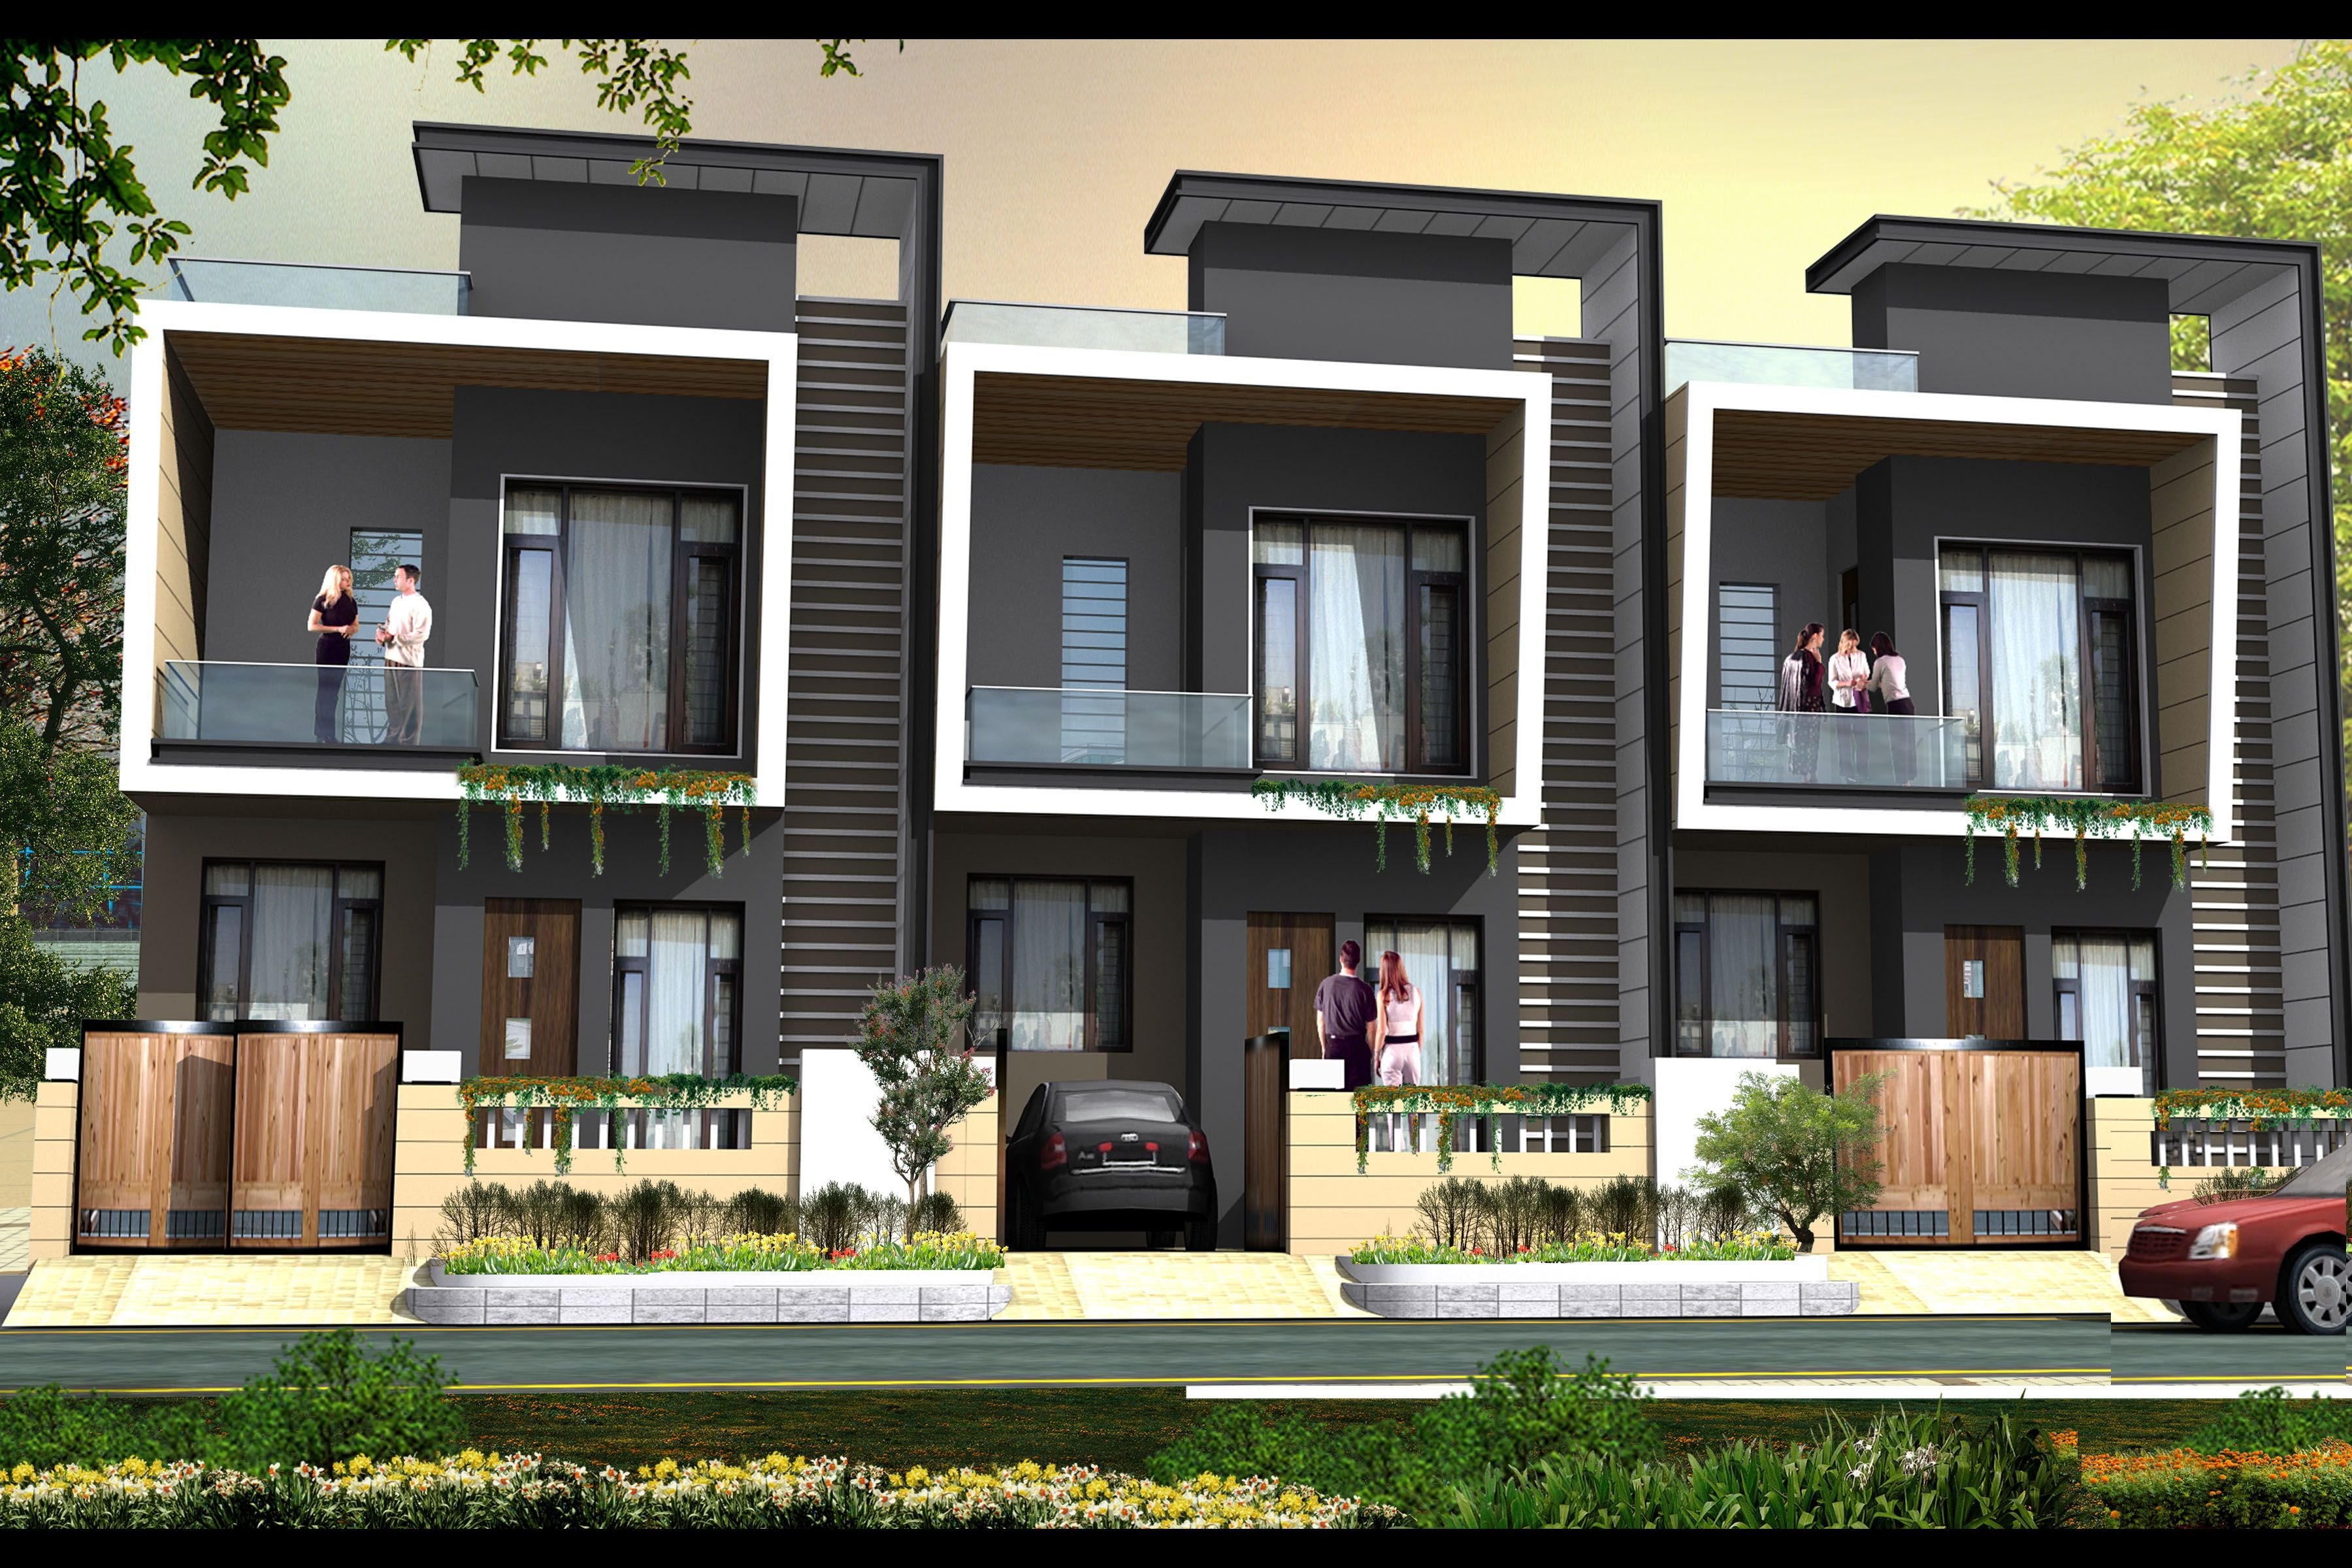 Image Result For Modern Row House Facade Row House Design Small Row House Design Facade House